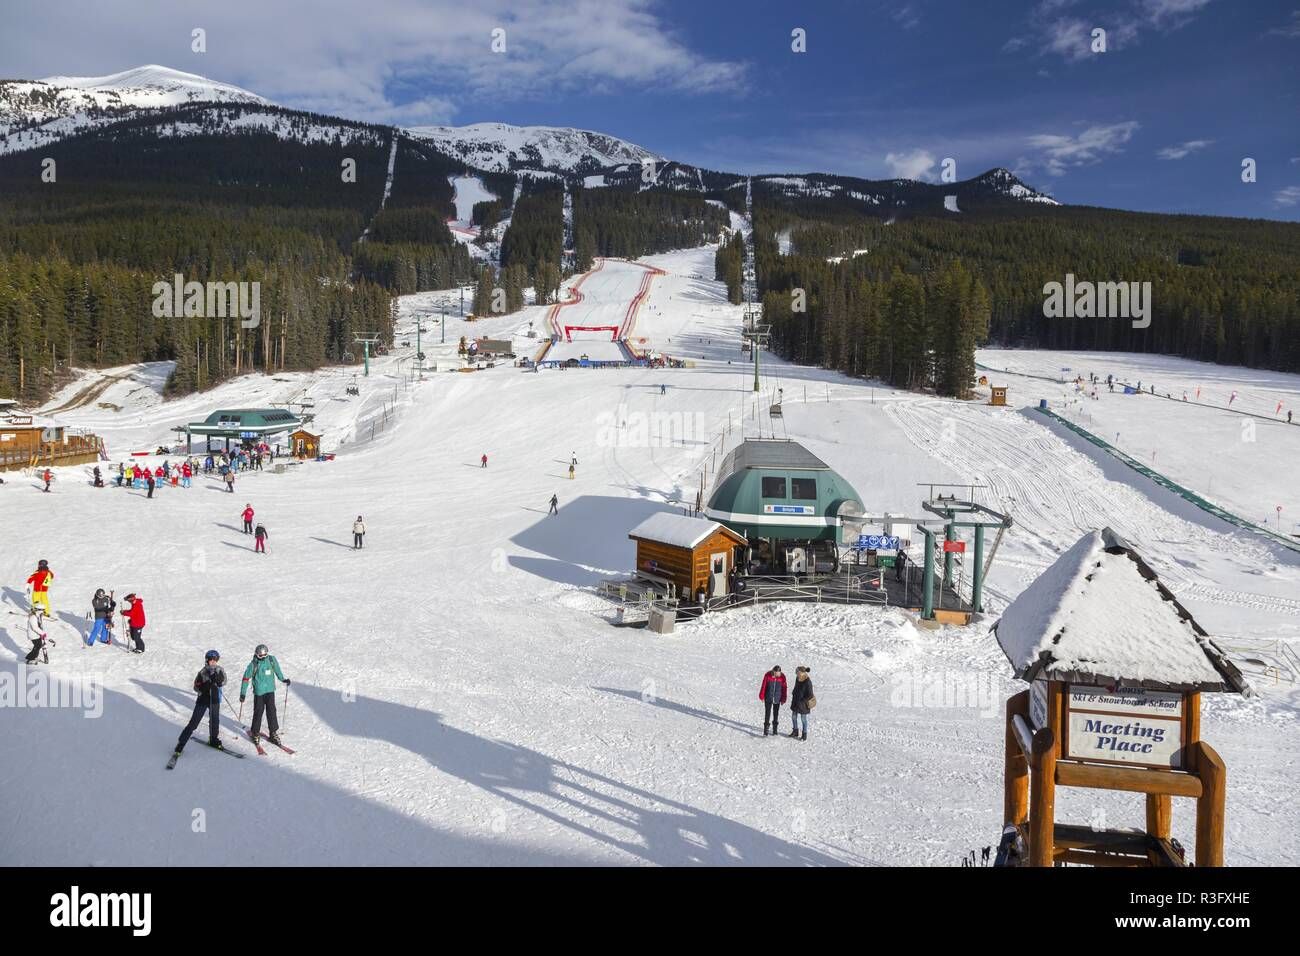 Skiers People at Snow Slopes of Lake Louise Resort, a site of FIS Men and Women Downhill Ski Event in Alberta Canada - Stock Image